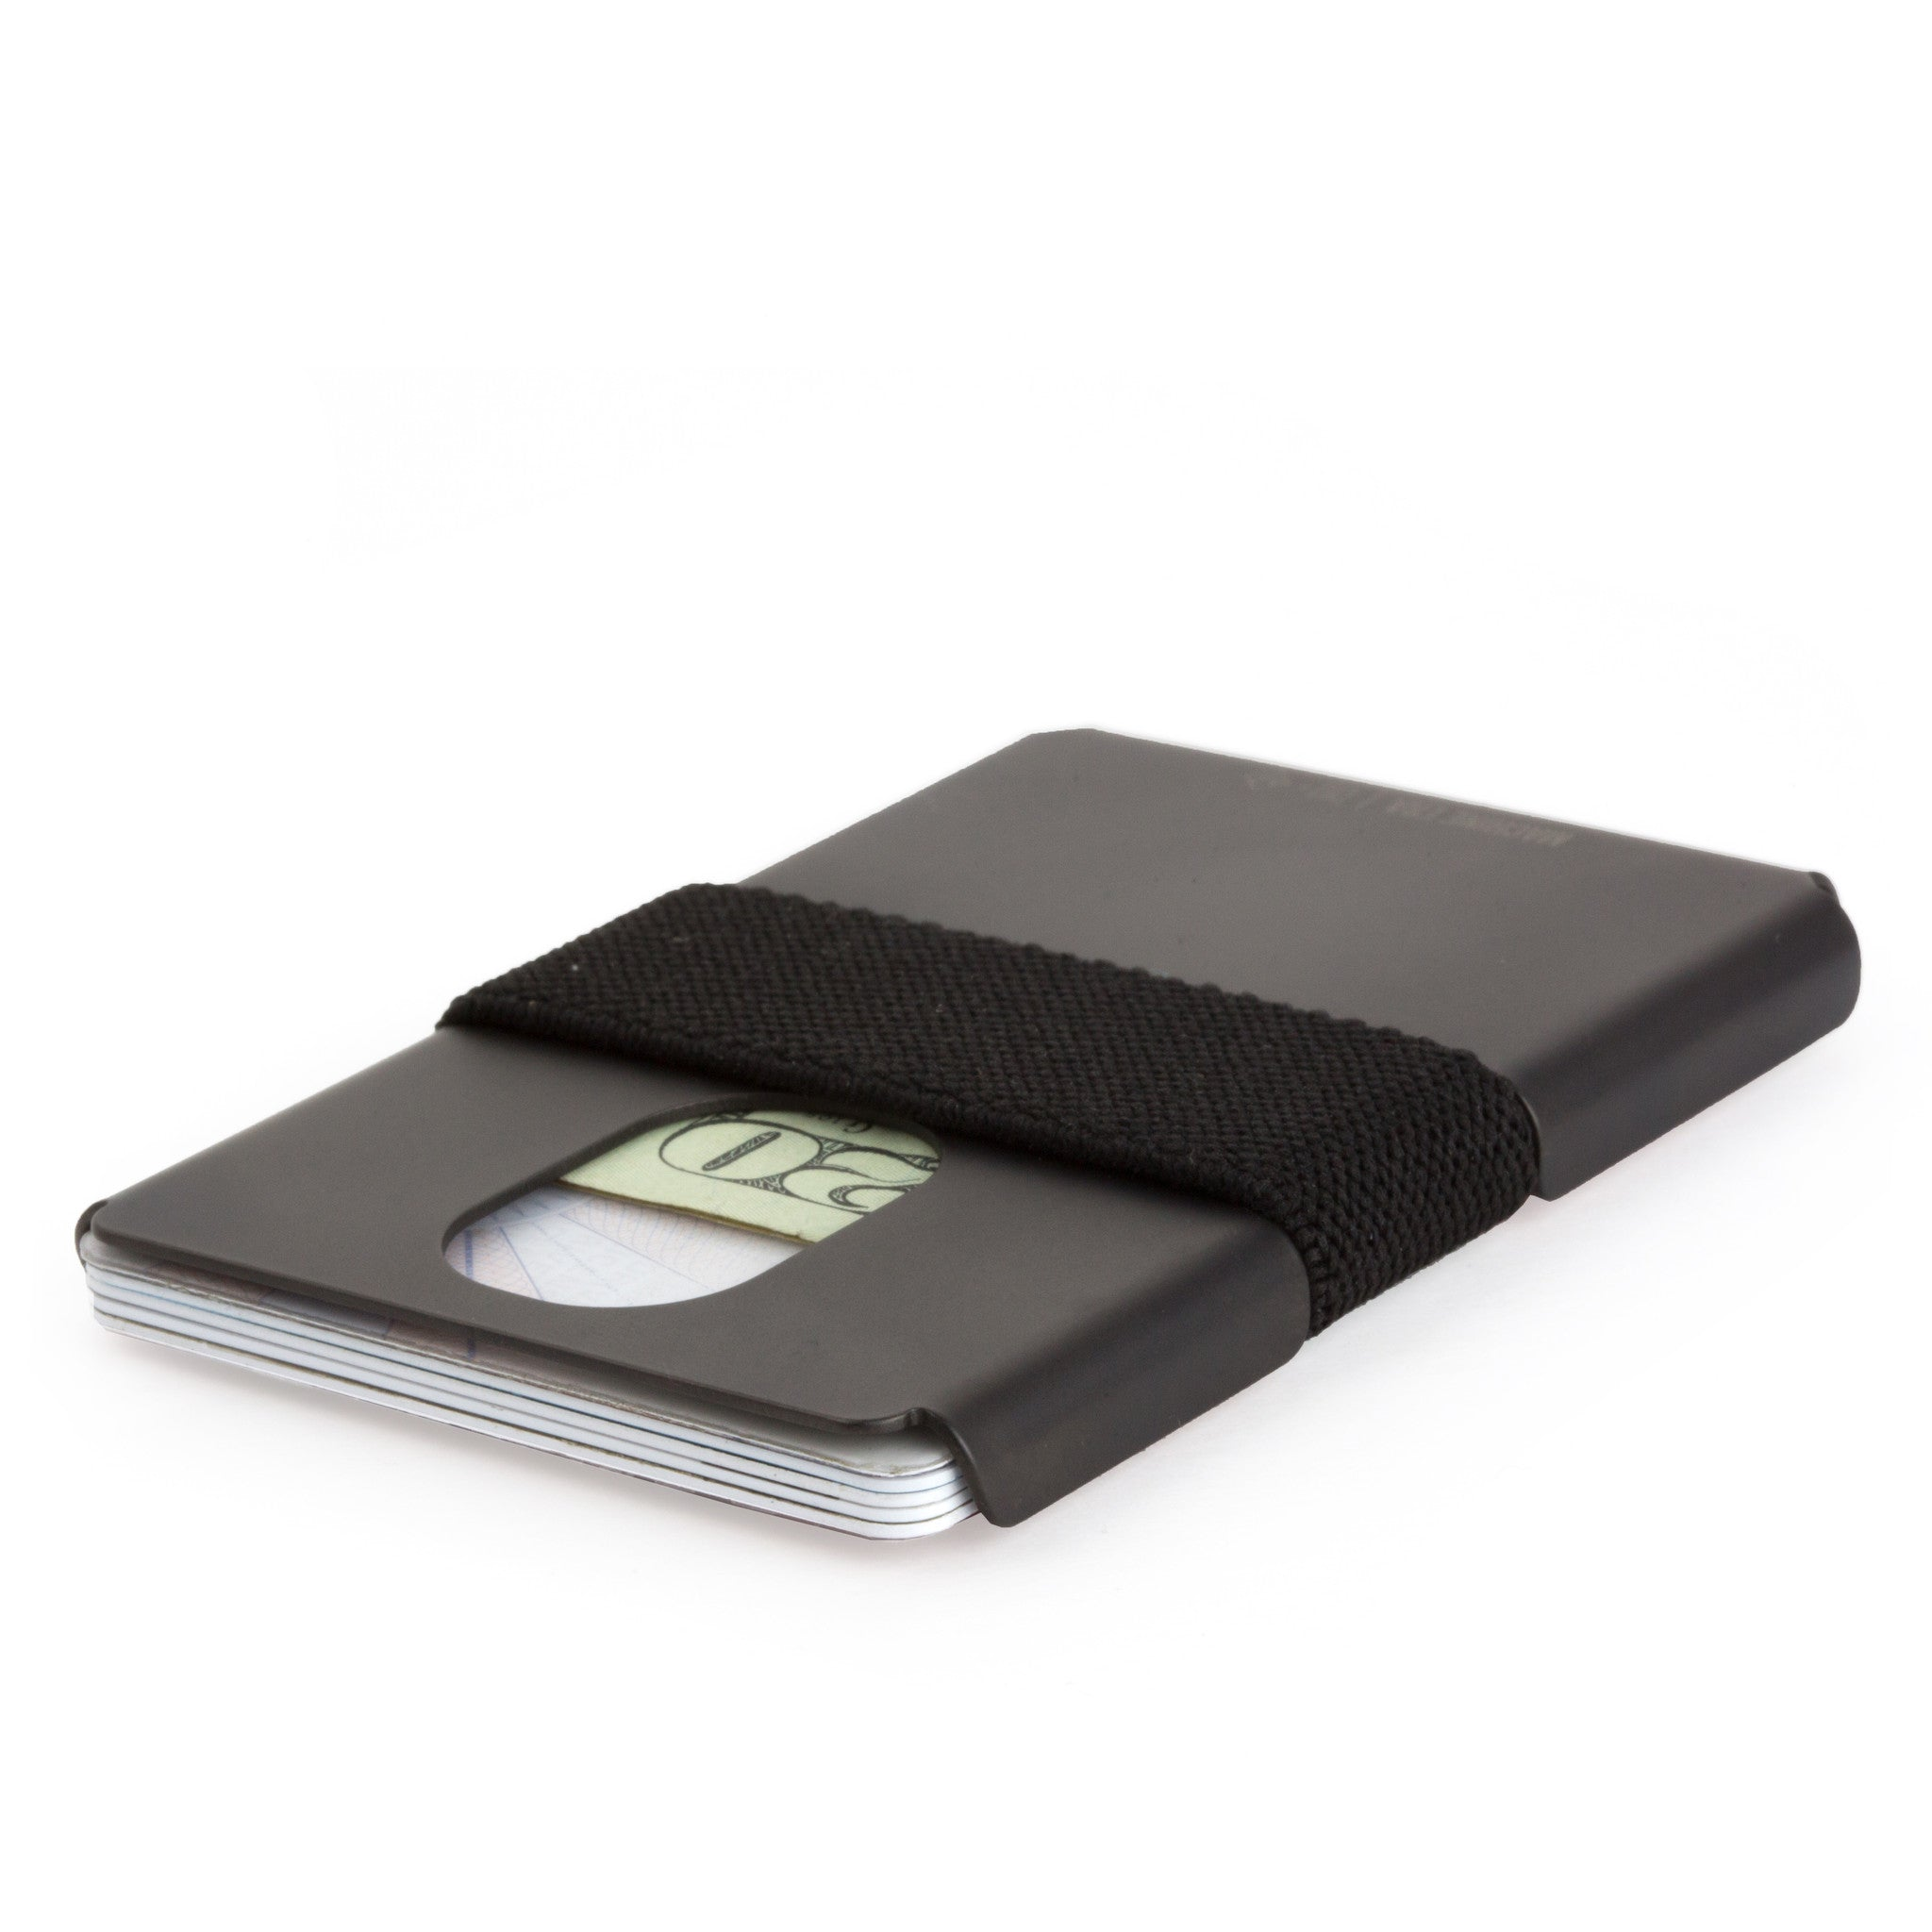 Ti5 Slim Wallet | Black DLC - Machine Era Co. - EDC